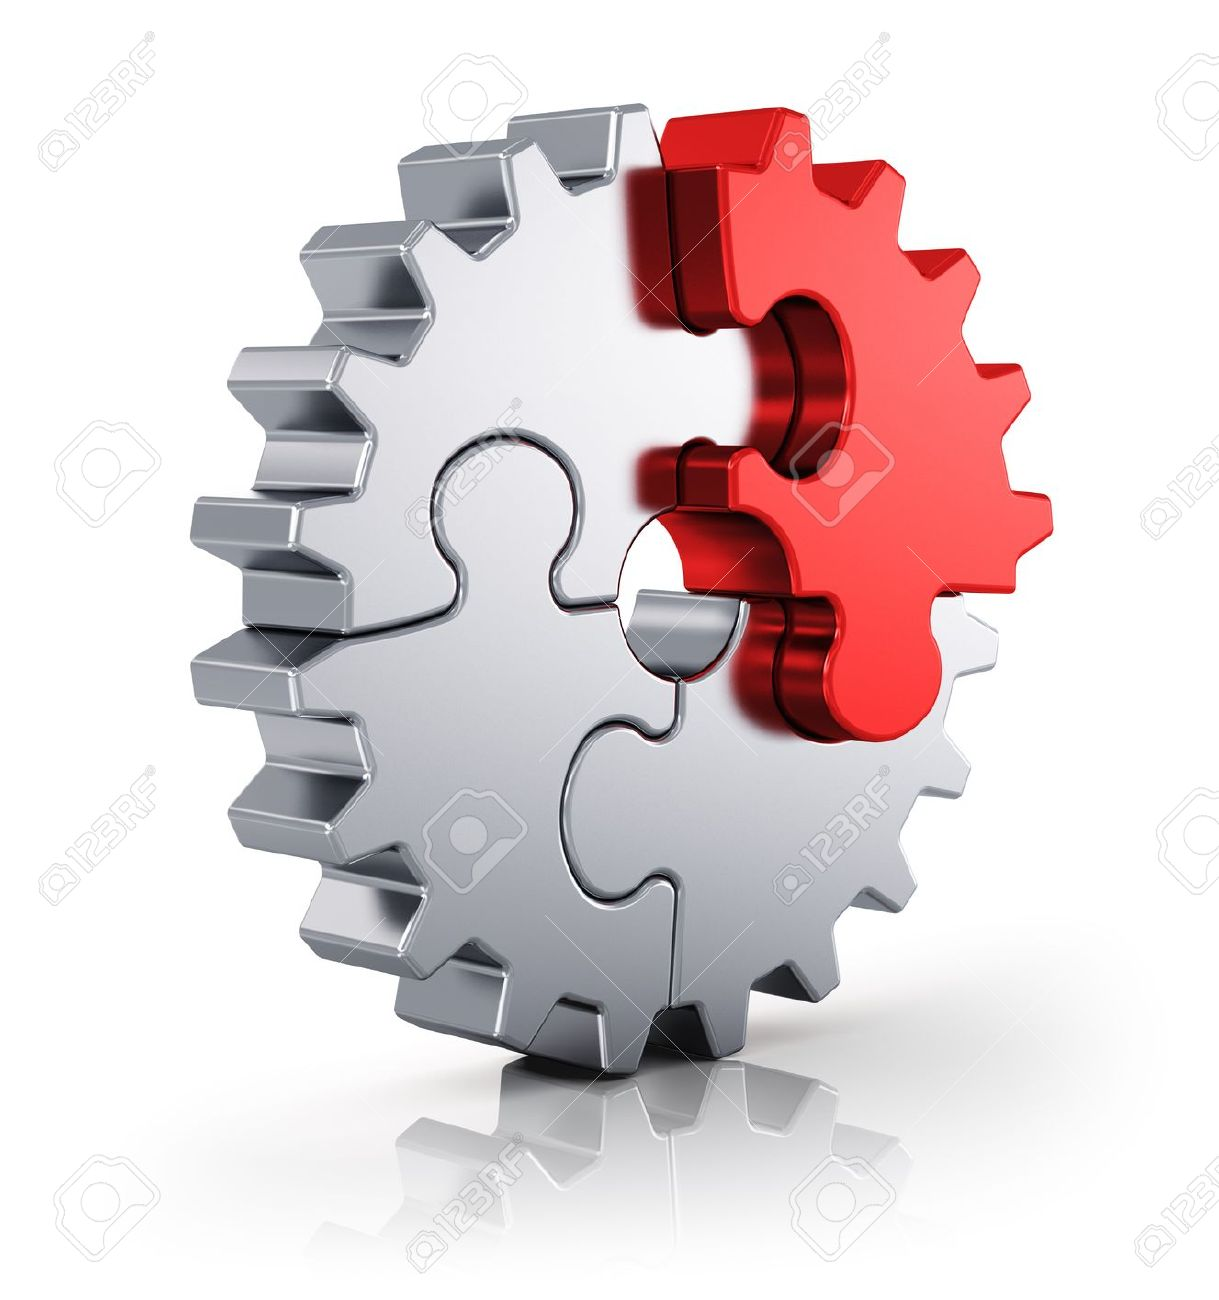 Business creativity, teamwork, partnership and success concept  metal gear from puzzle pieces isolated on white background with reflection effect Stock Photo - 20295255